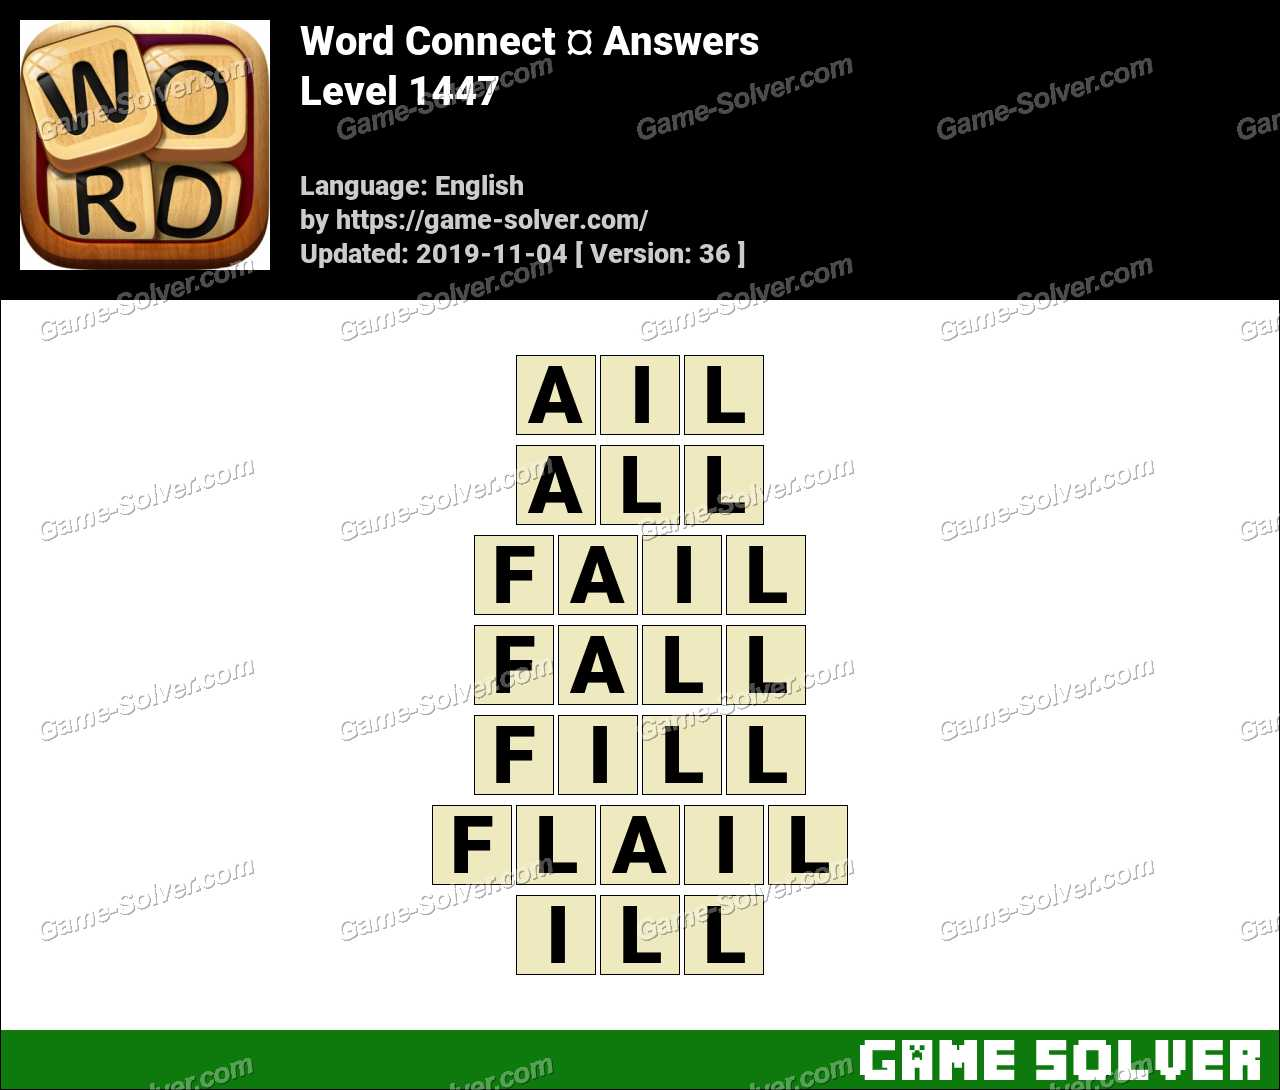 Word Connect Level 1447 Answers